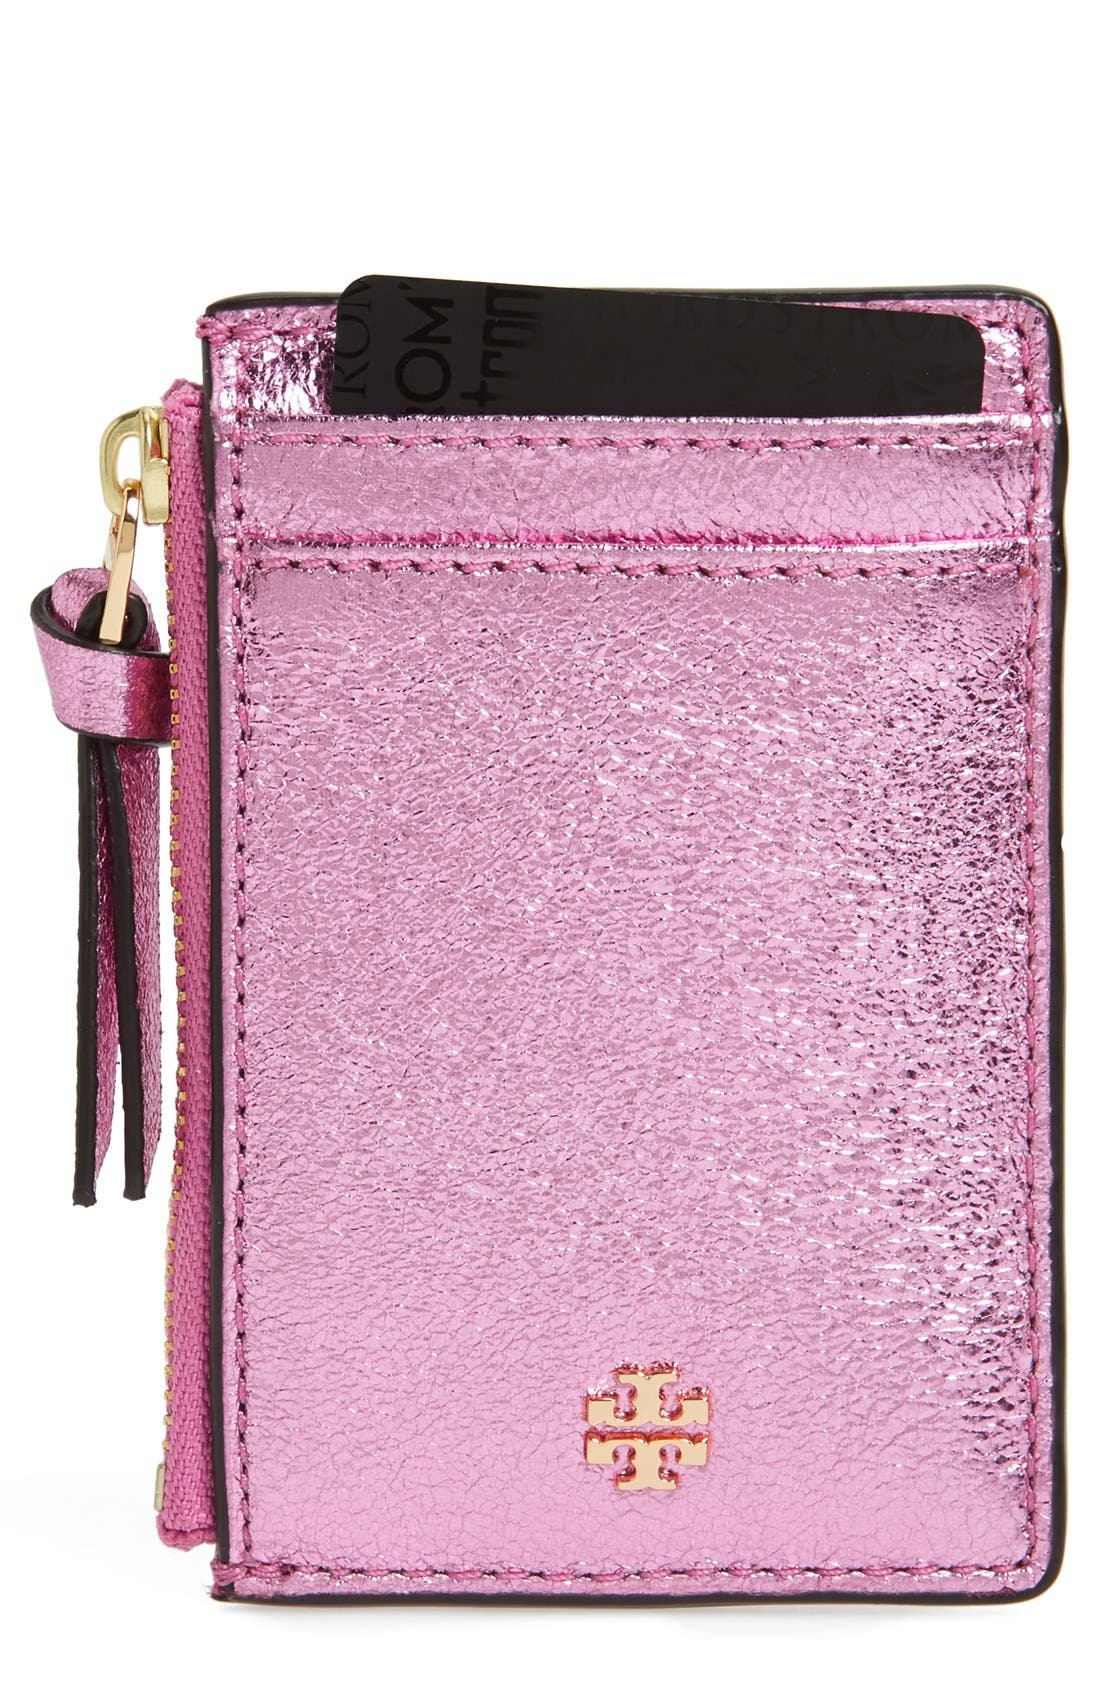 Main Image - Tory Burch Crinkle Metallic Leather Card Case